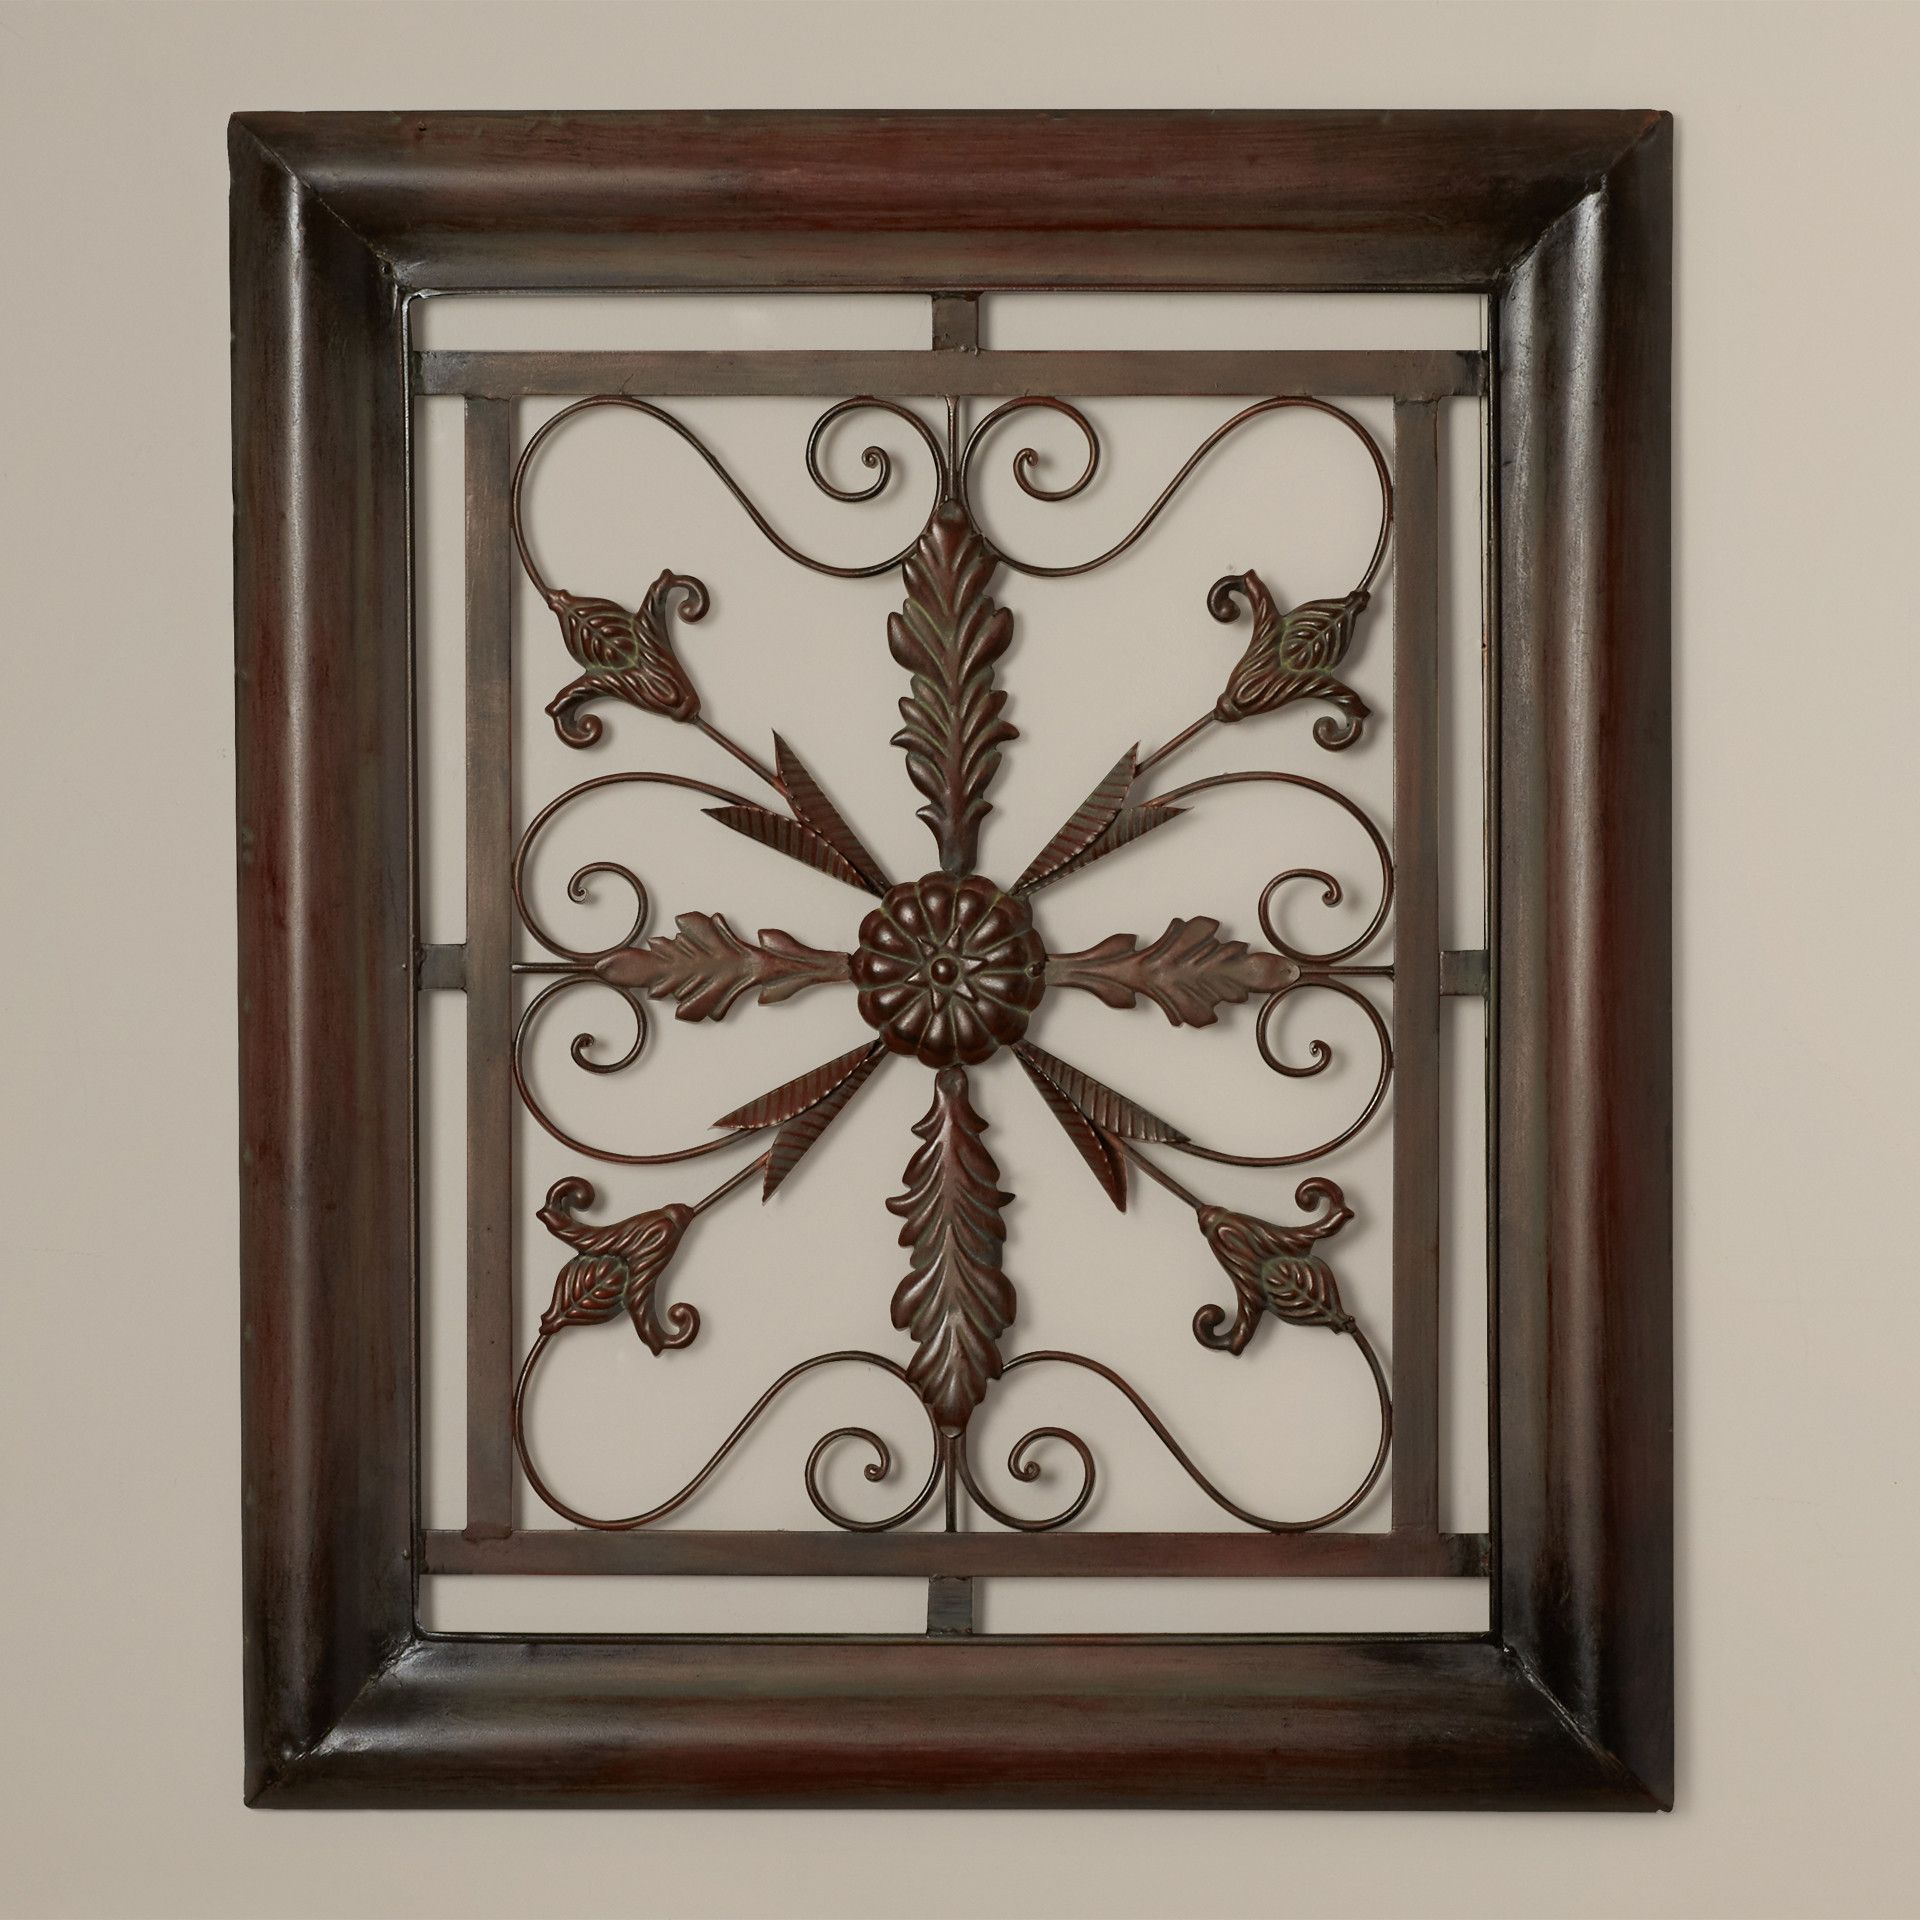 Charlton Home® Bayliss Square Scroll Wall Decor | Tuscan for Metal Wall Decor By Charlton Home (Image 9 of 30)